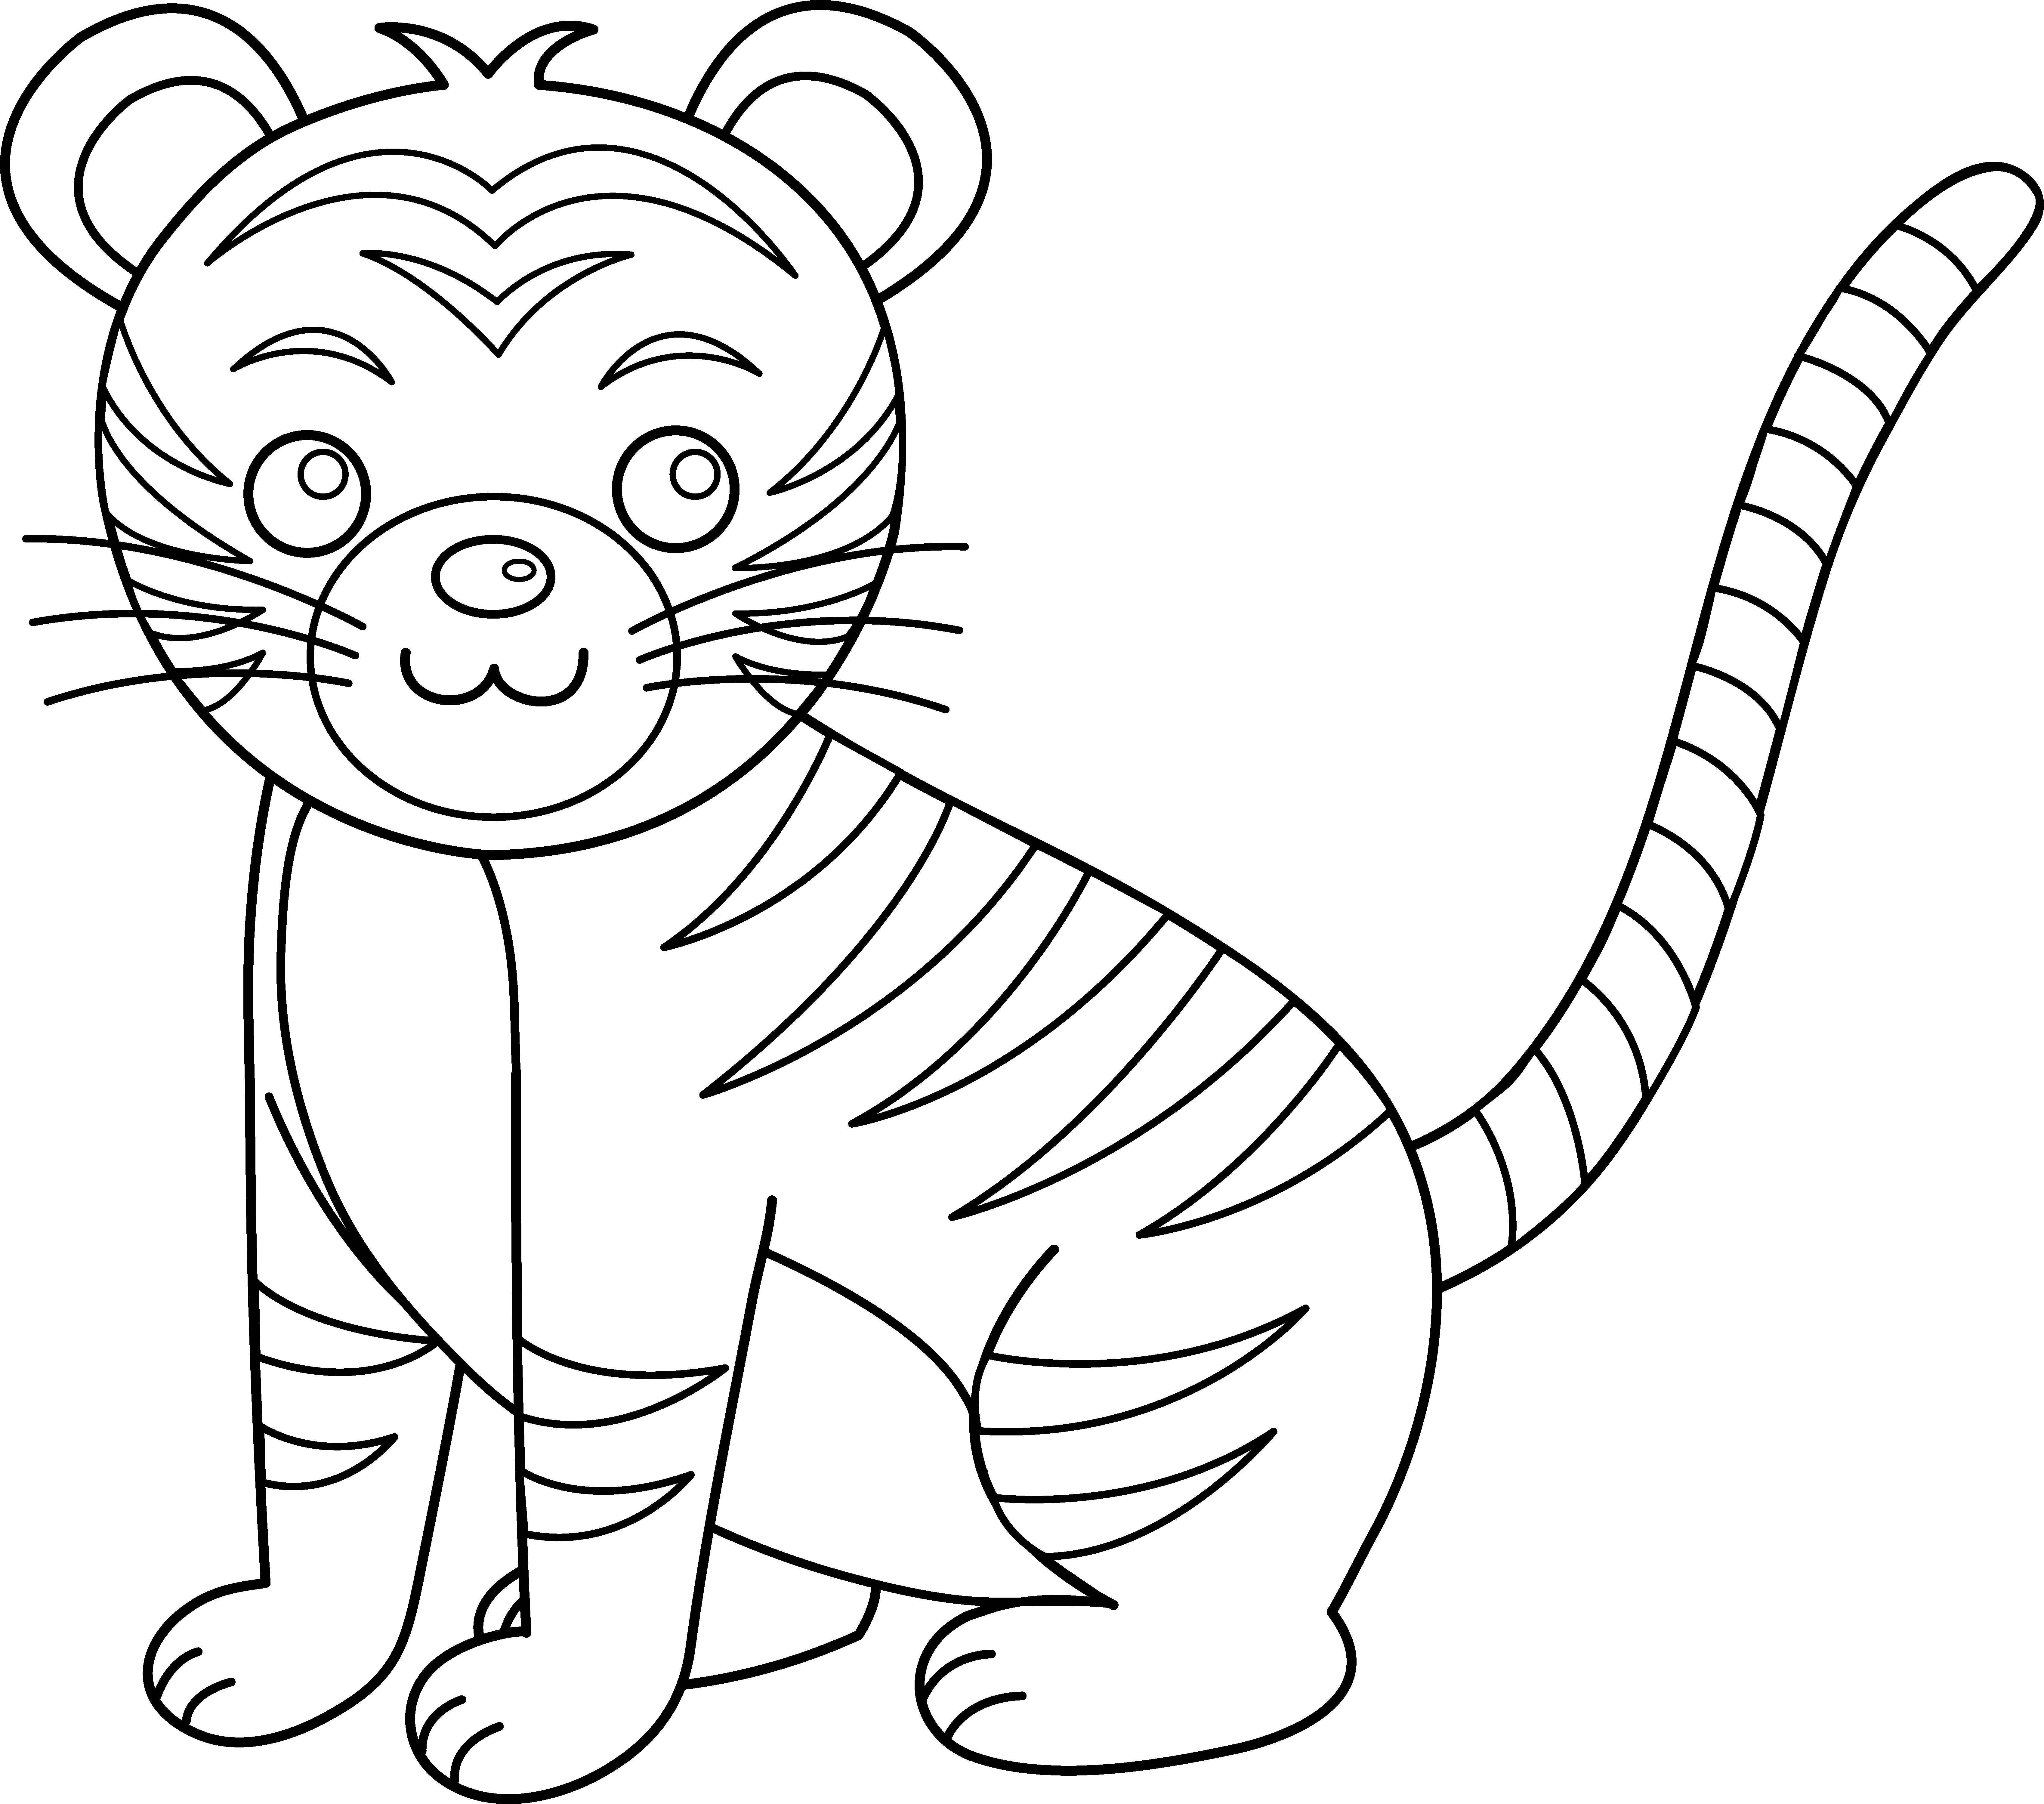 Tiger animals printable coloring. See clipart color page